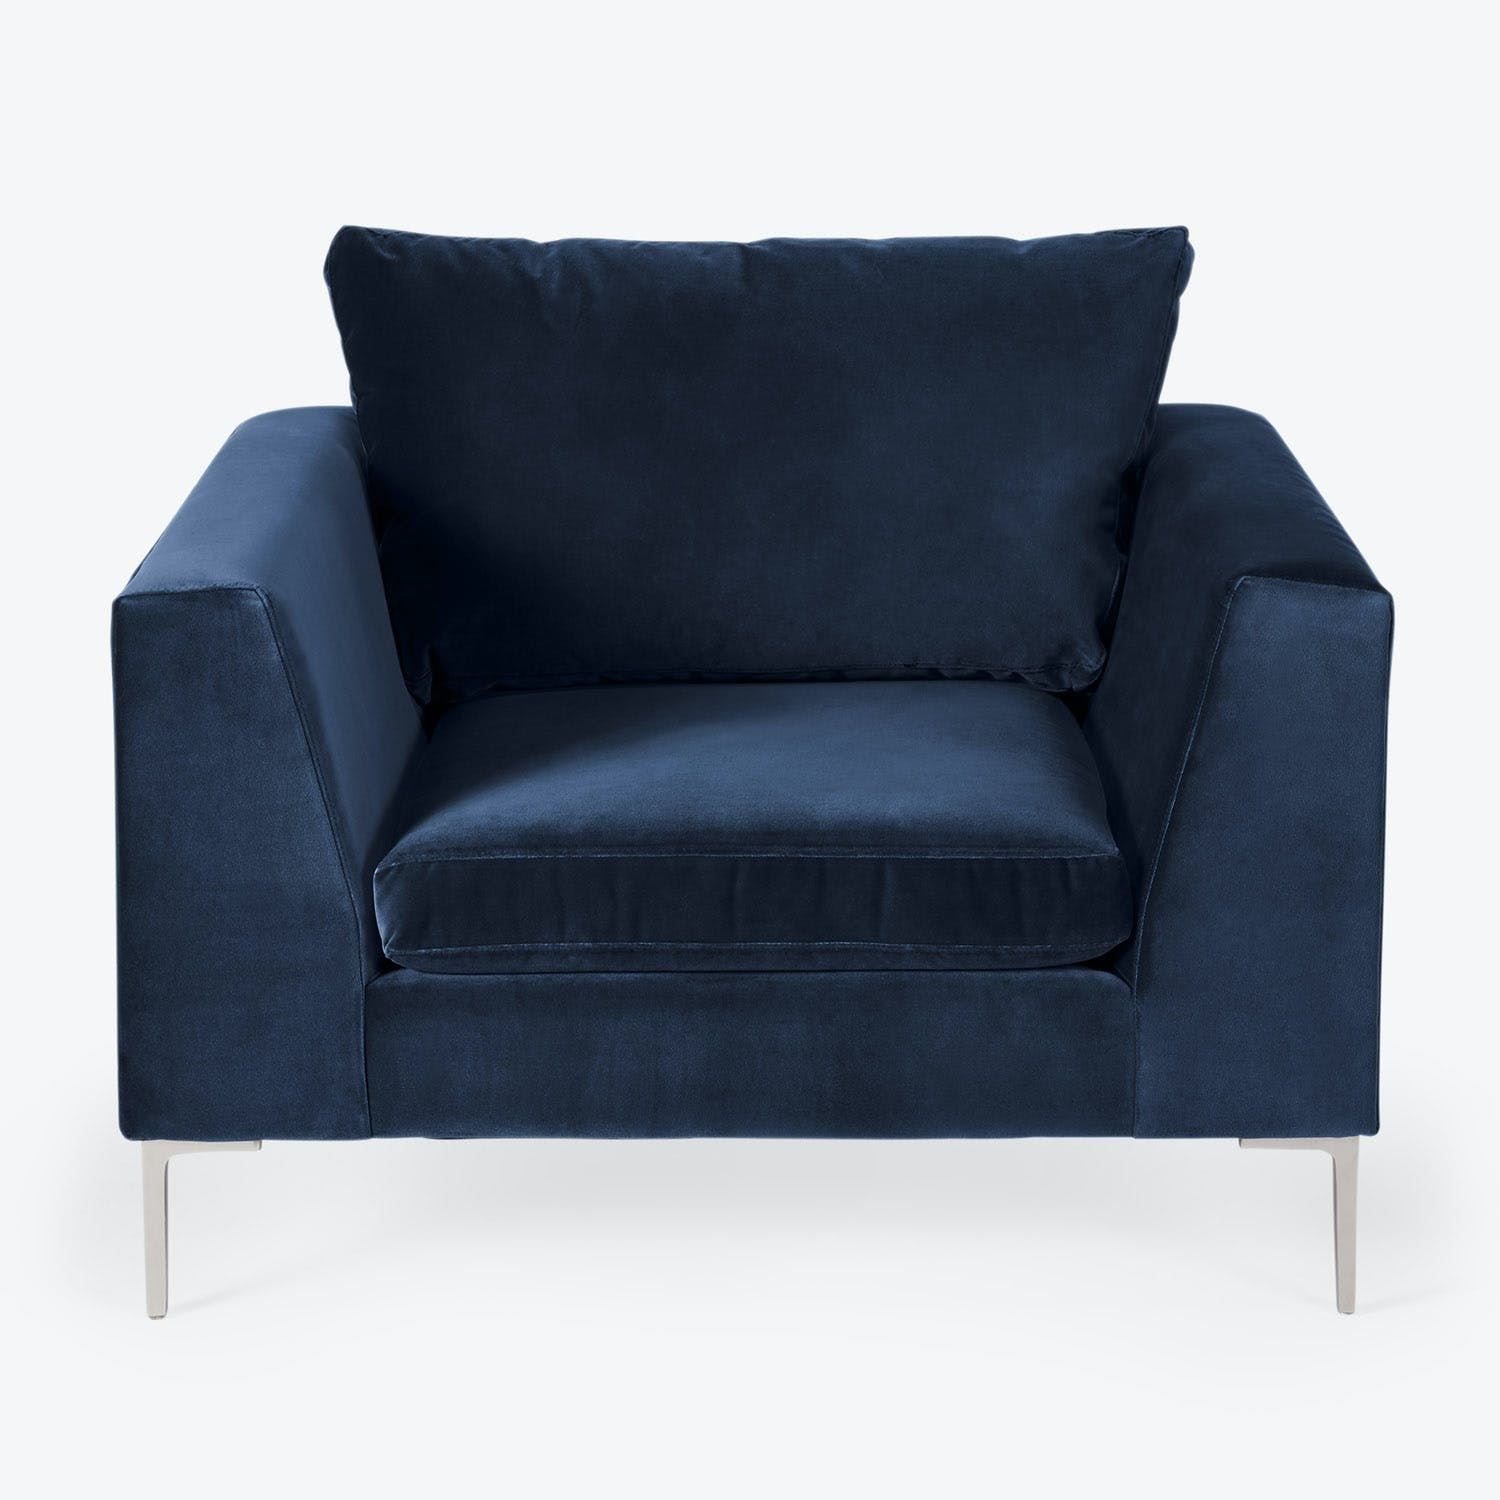 Product Image - Carroll Gardens Chair